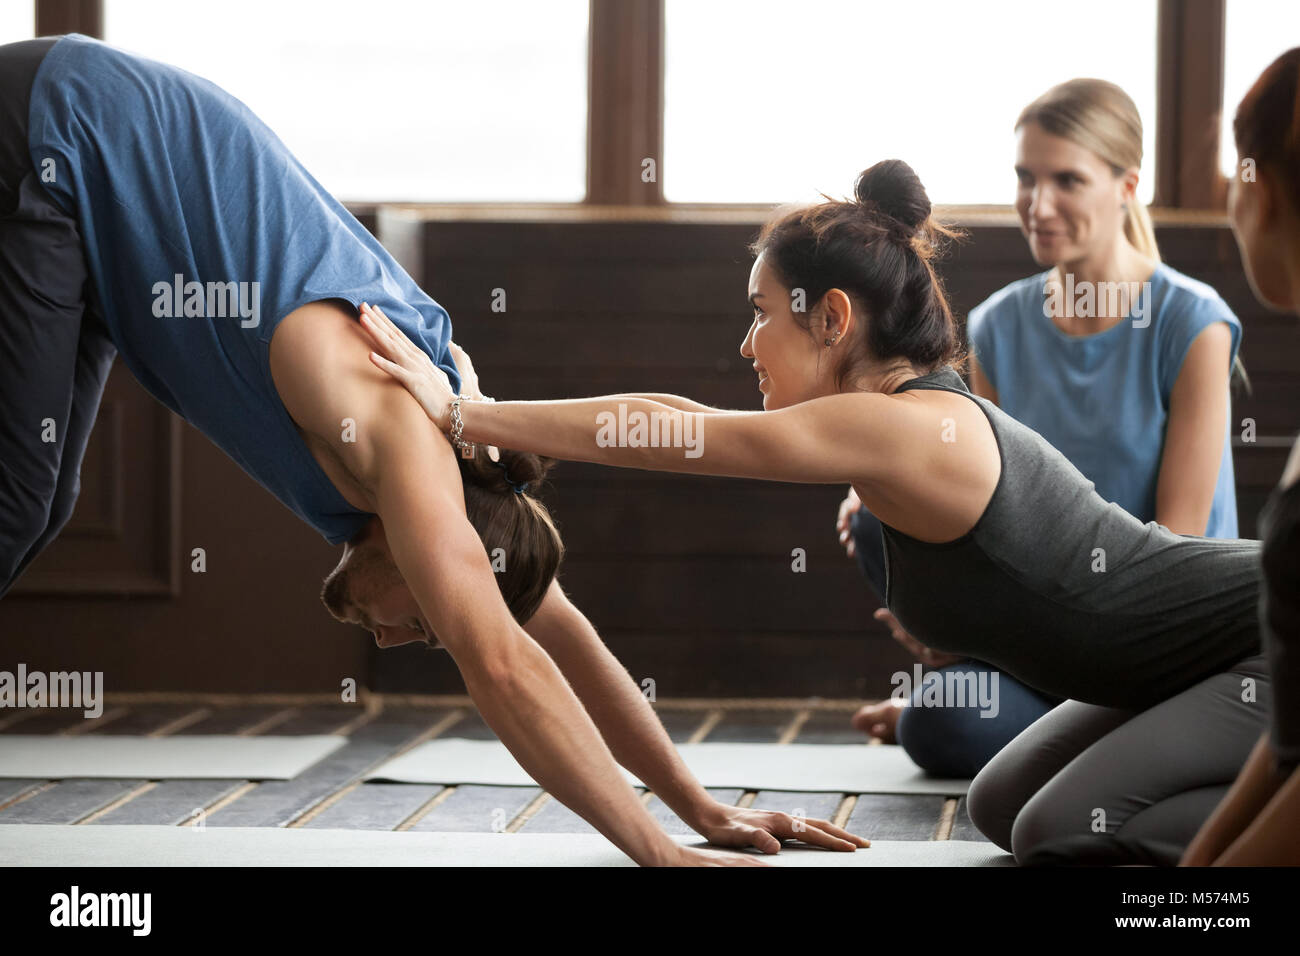 Yoga teacher helping man to stretch holding hands on shoulders - Stock Image